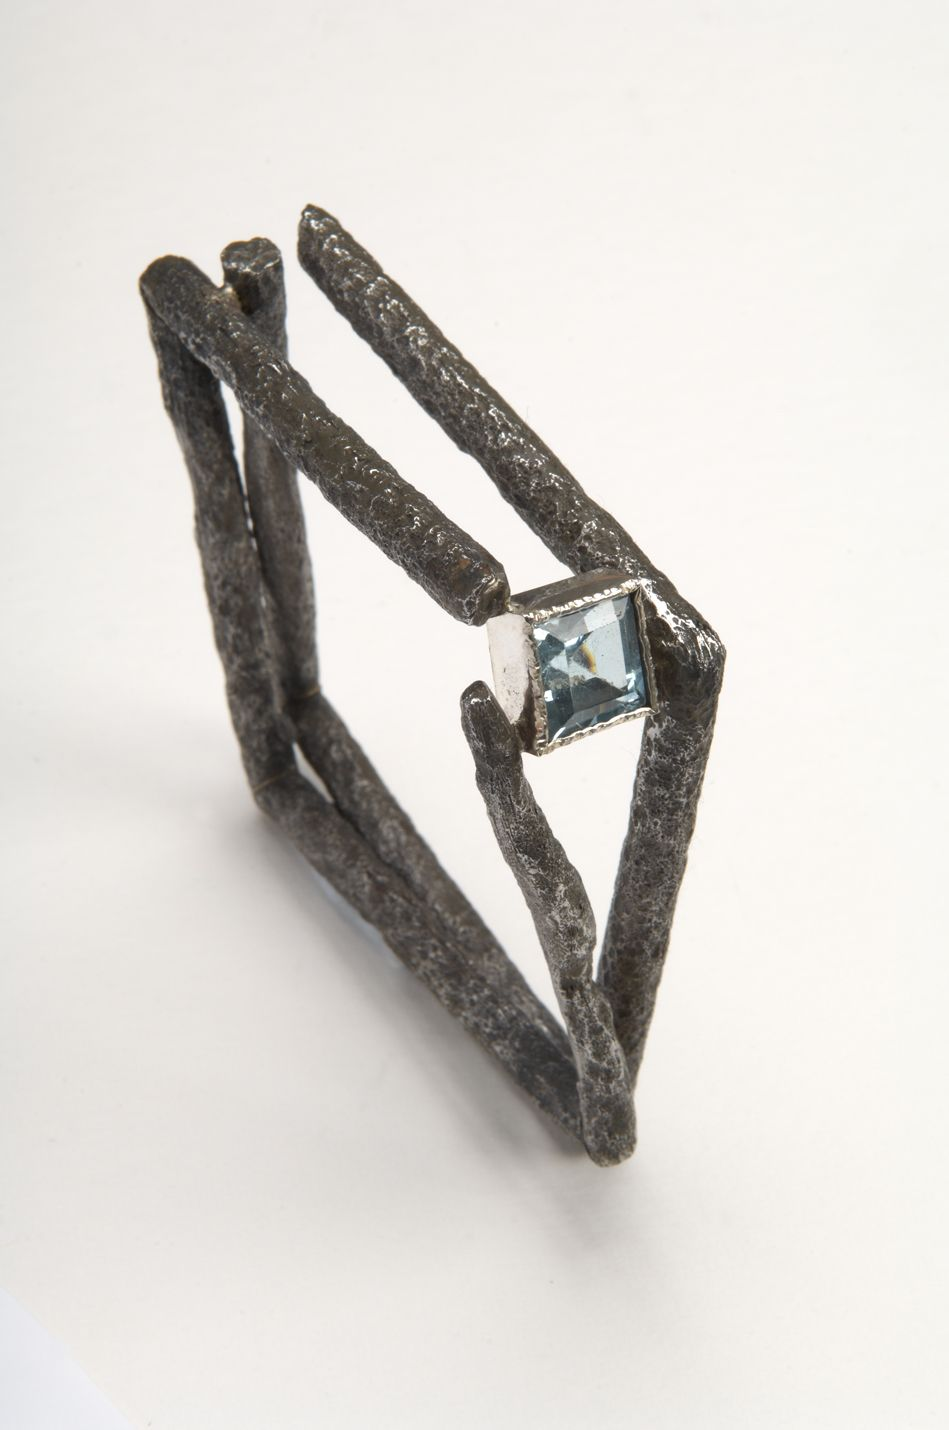 Willem Heyneker's Blog: Bracelet is constructed from found steel(rusty tent pegs)and a synthetic blue topaz.